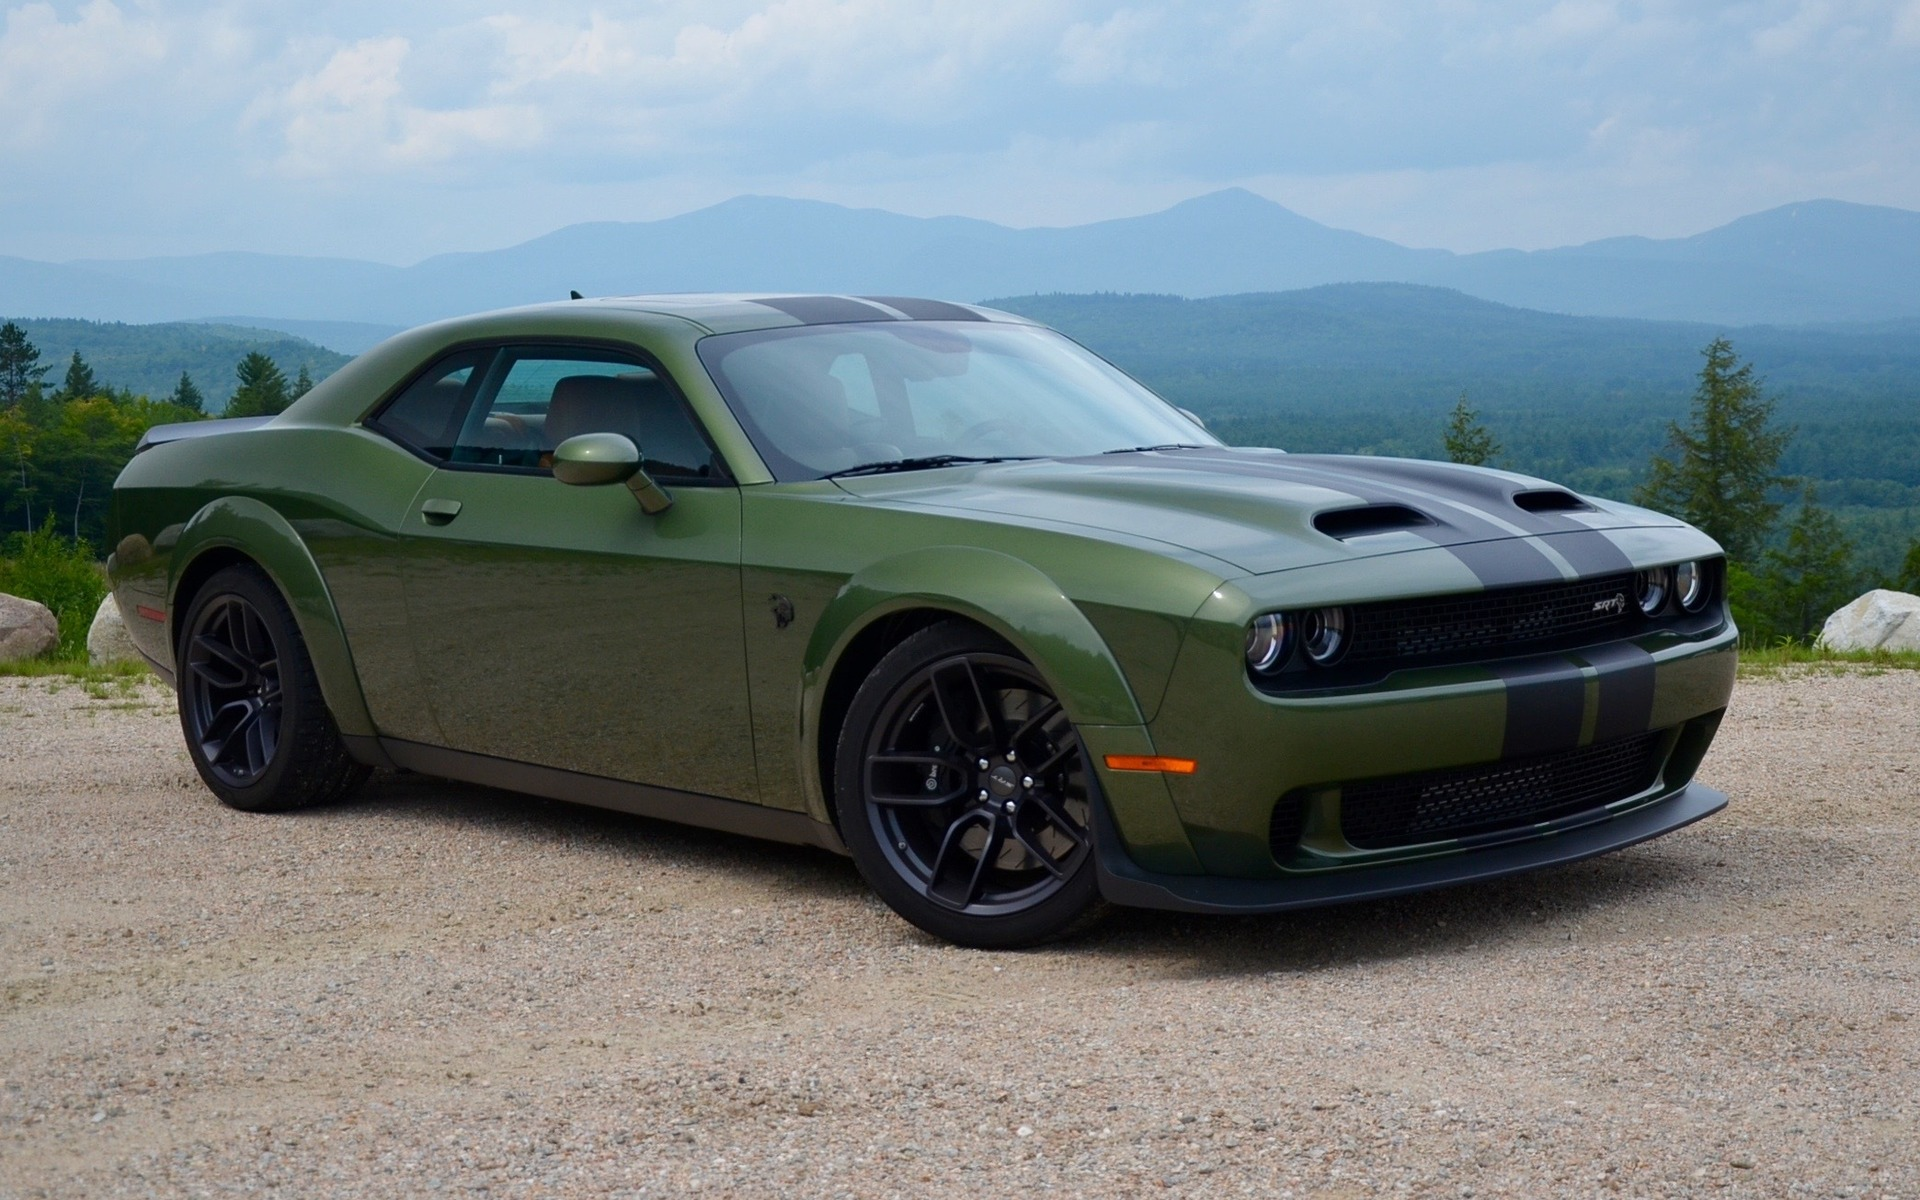 2019 Dodge Challenger Sxt Specifications The Car Guide